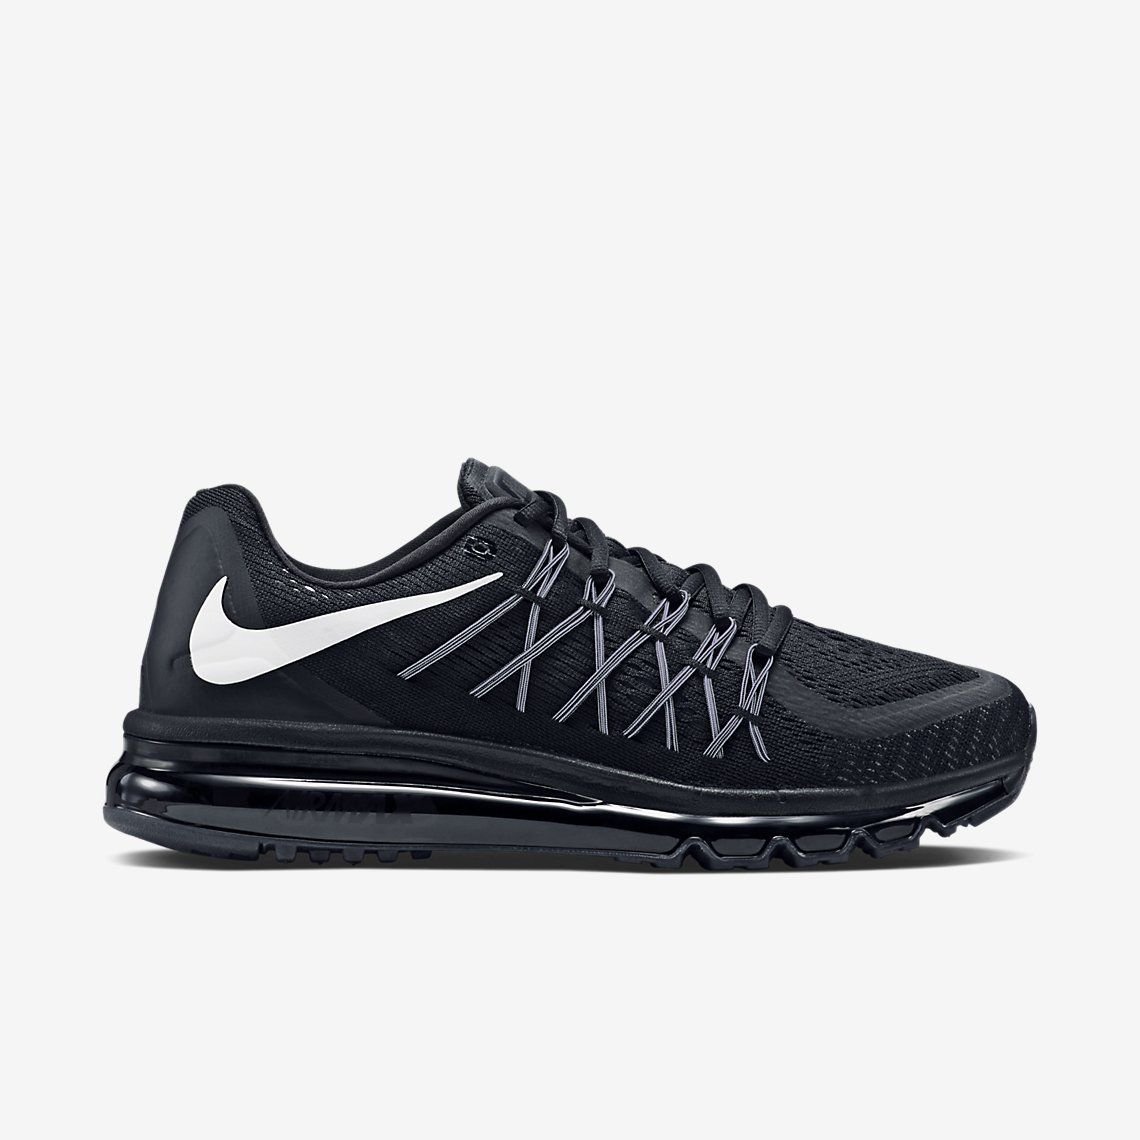 first rate e1dff 5a3a5 Nike Air Max 2015 Zapatillas de running - Hombre. Nike Store ES ...